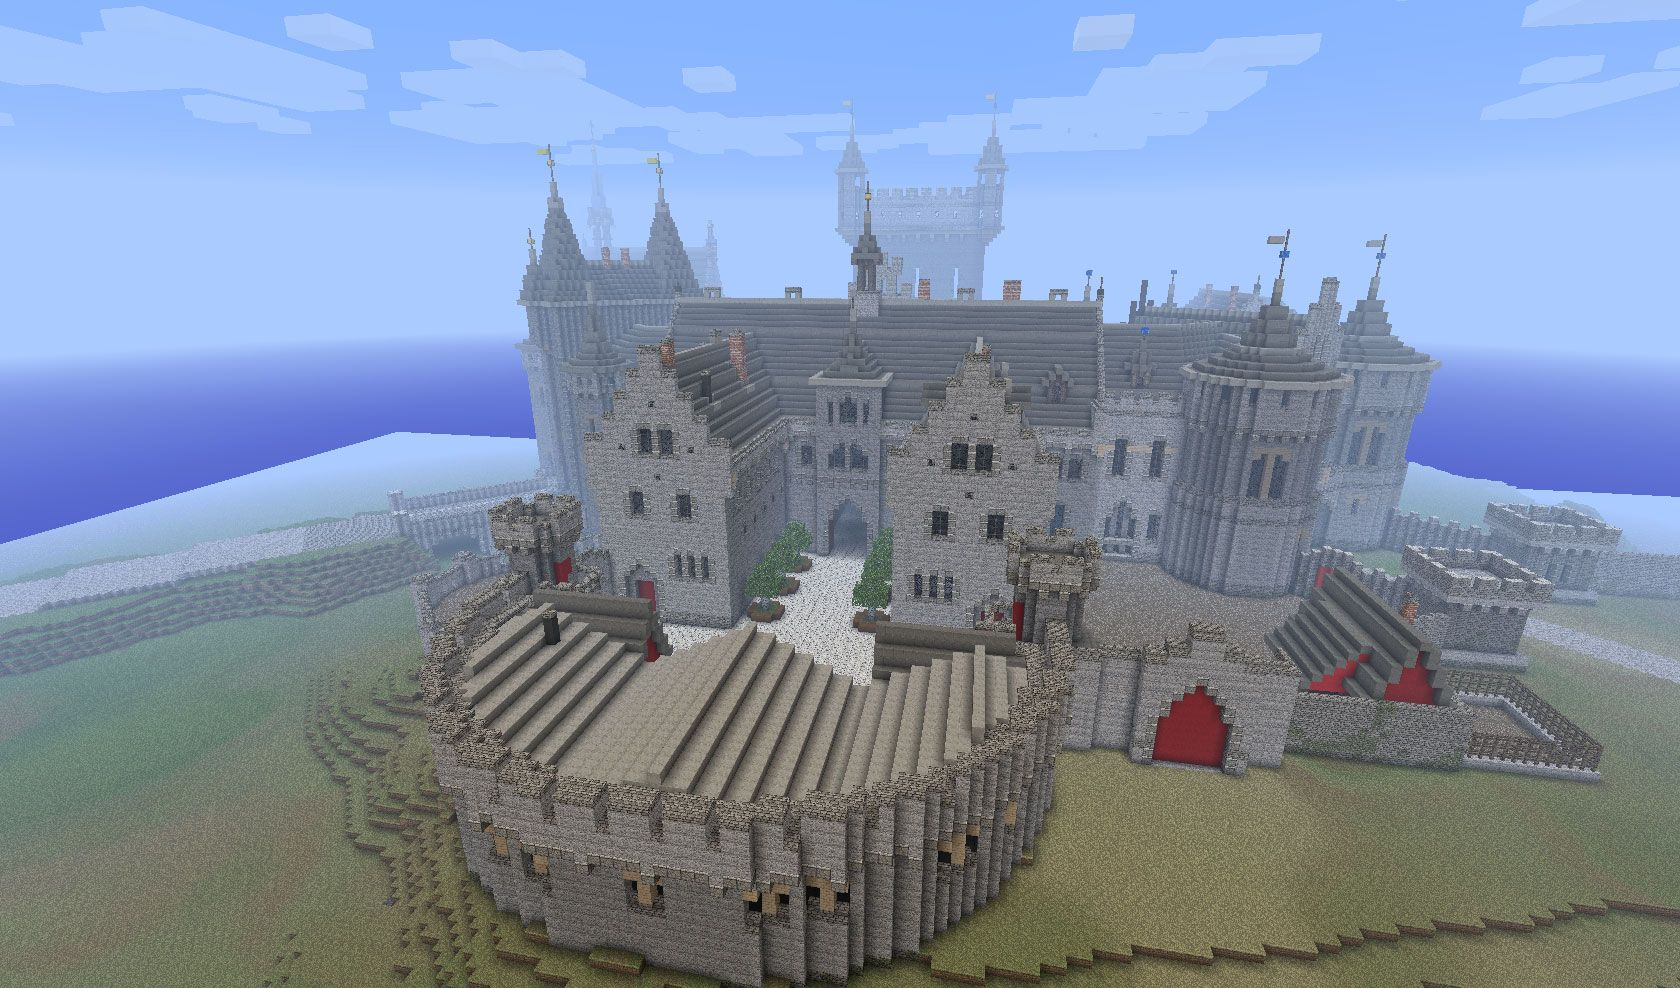 minecraft castle | due to the large scale you will feel very small